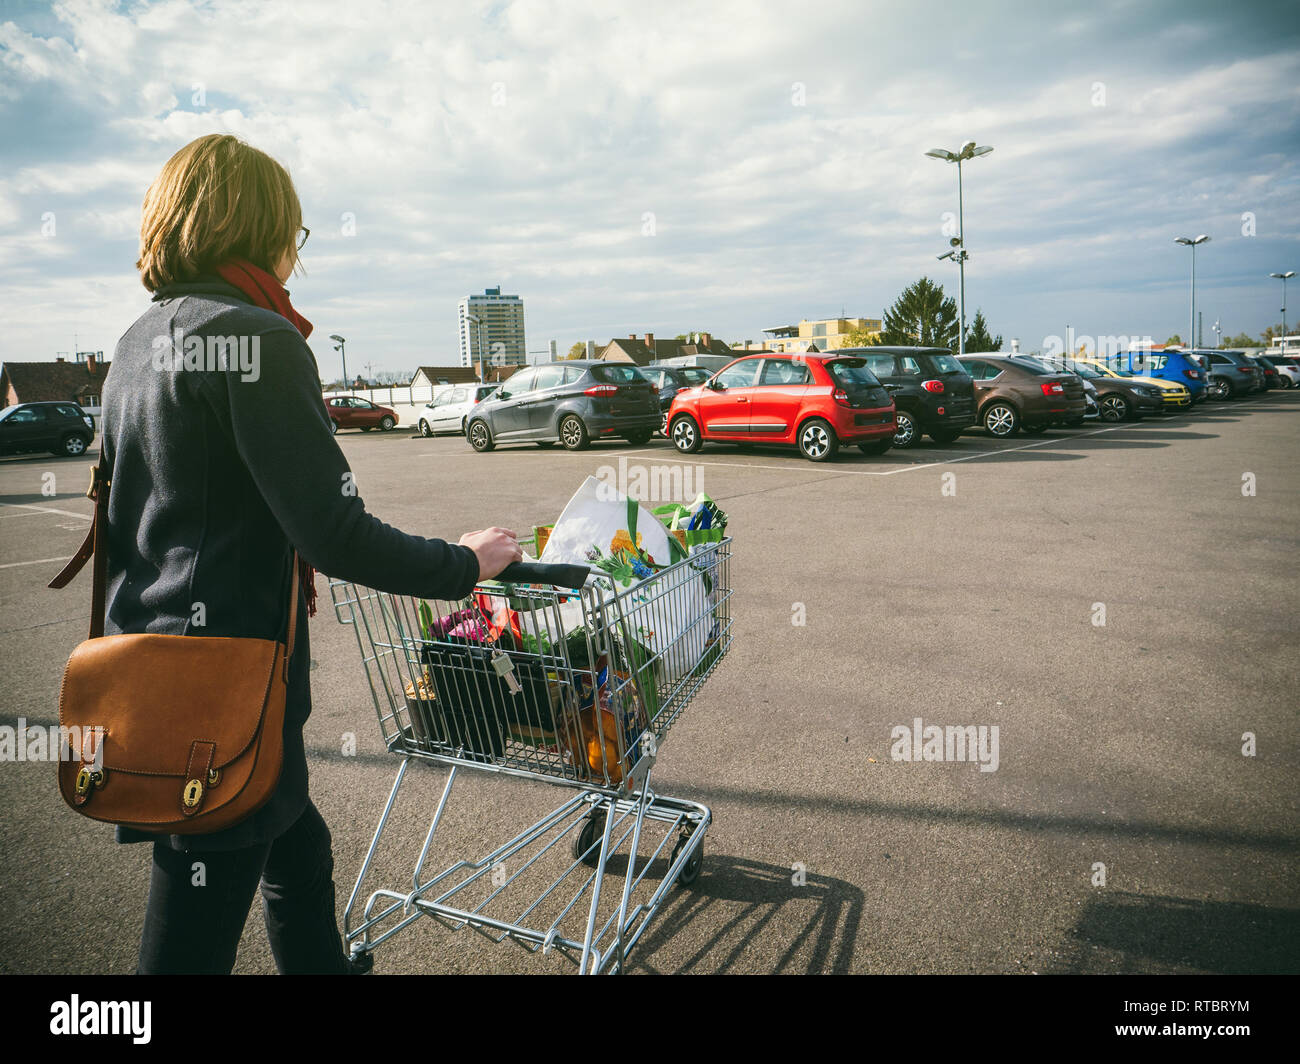 Woman pushing supermarket cart full with food and household products tot he car parked on the roof parking - Stock Image